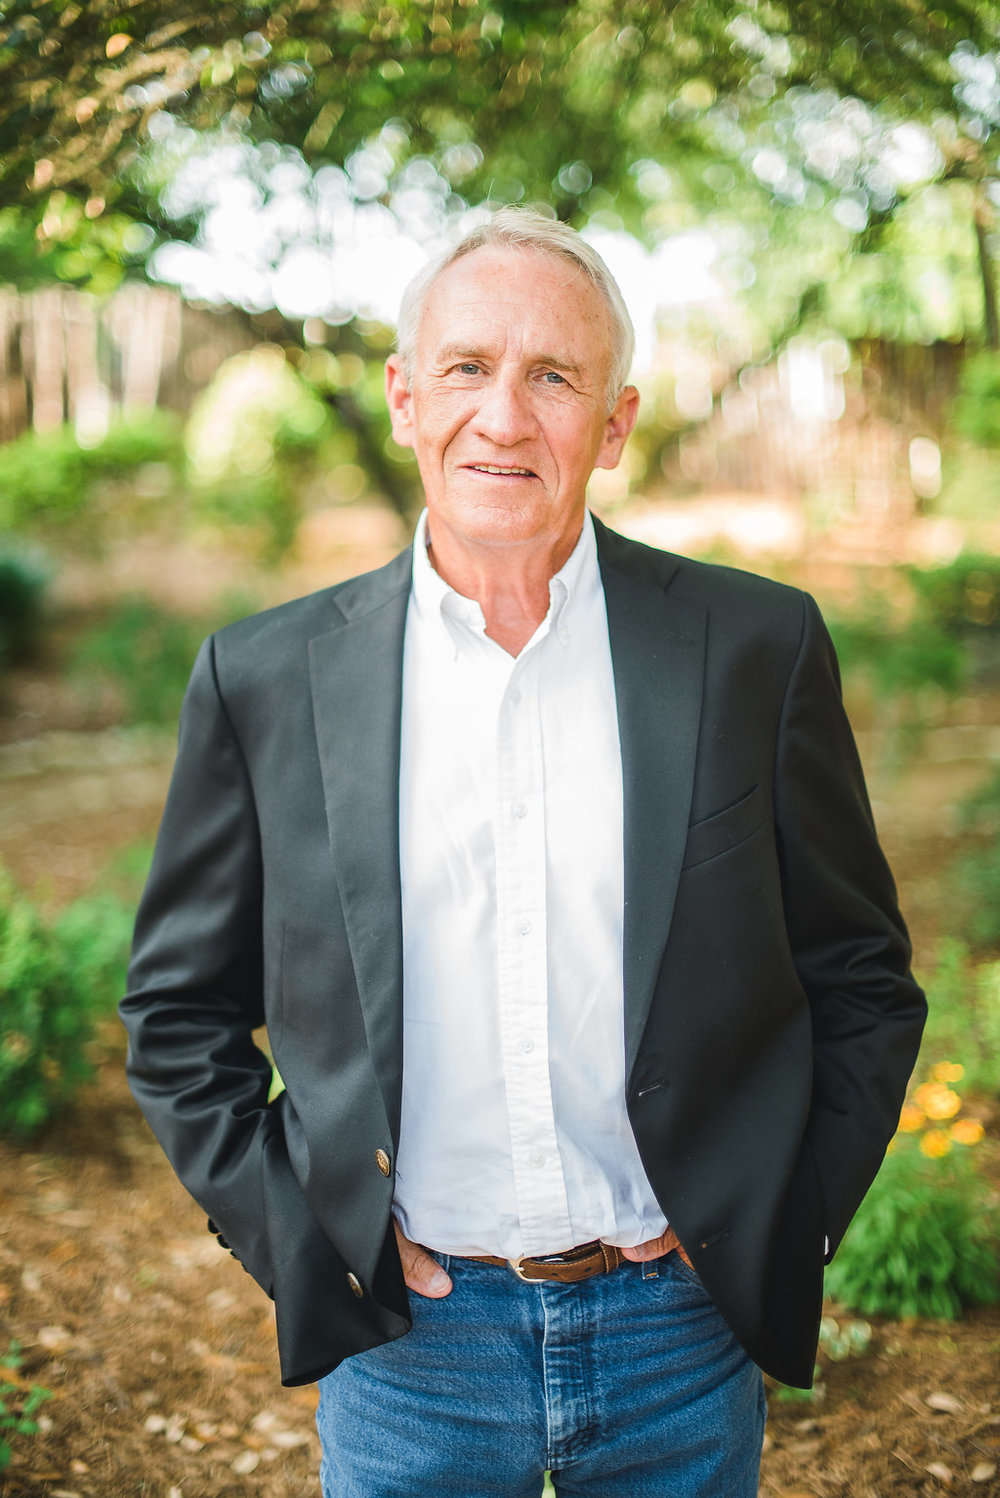 Paul Smith Realtor/Owner  (325) 347-4075   Paul@reataranchrealty.com   Paul was raised in Lubbock, Tx and is a graduate of Texas Tech (yes, he bleeds red & black!) He just recently retired after 42 years in the Education and coaching  ....Meet Paul